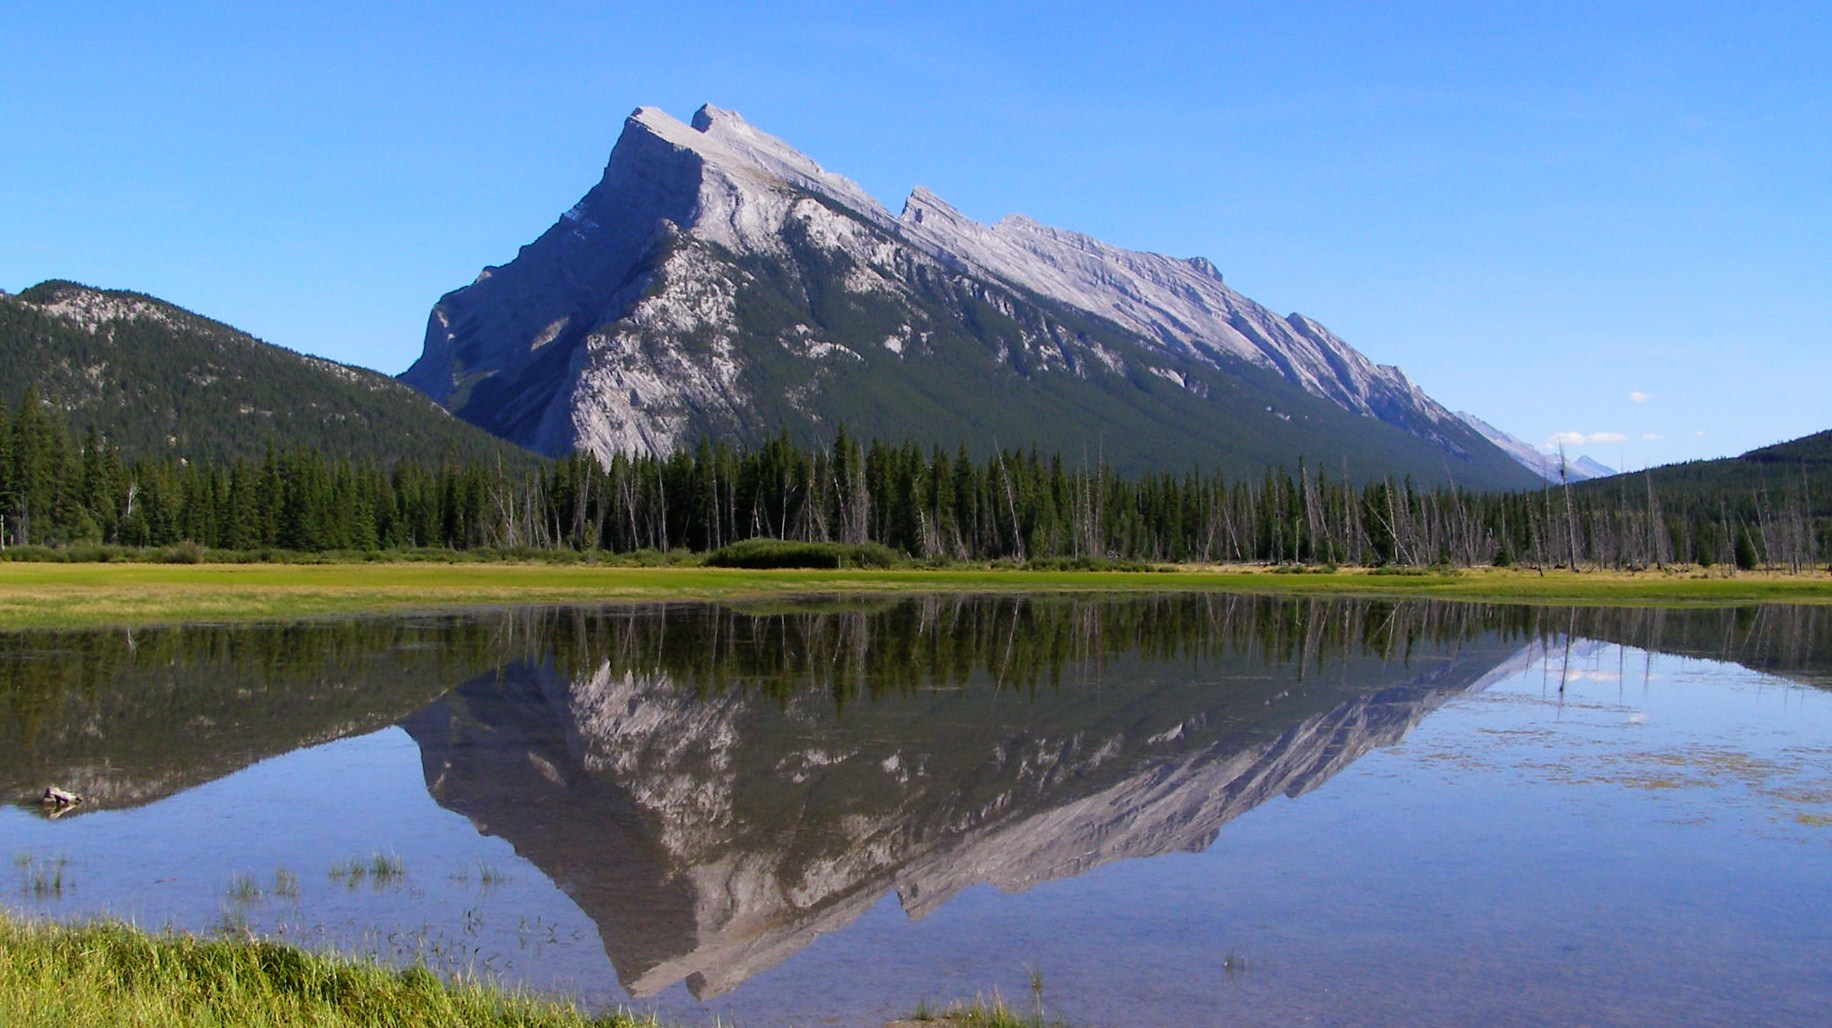 Mount Rundle (2949m) - Banff National Park